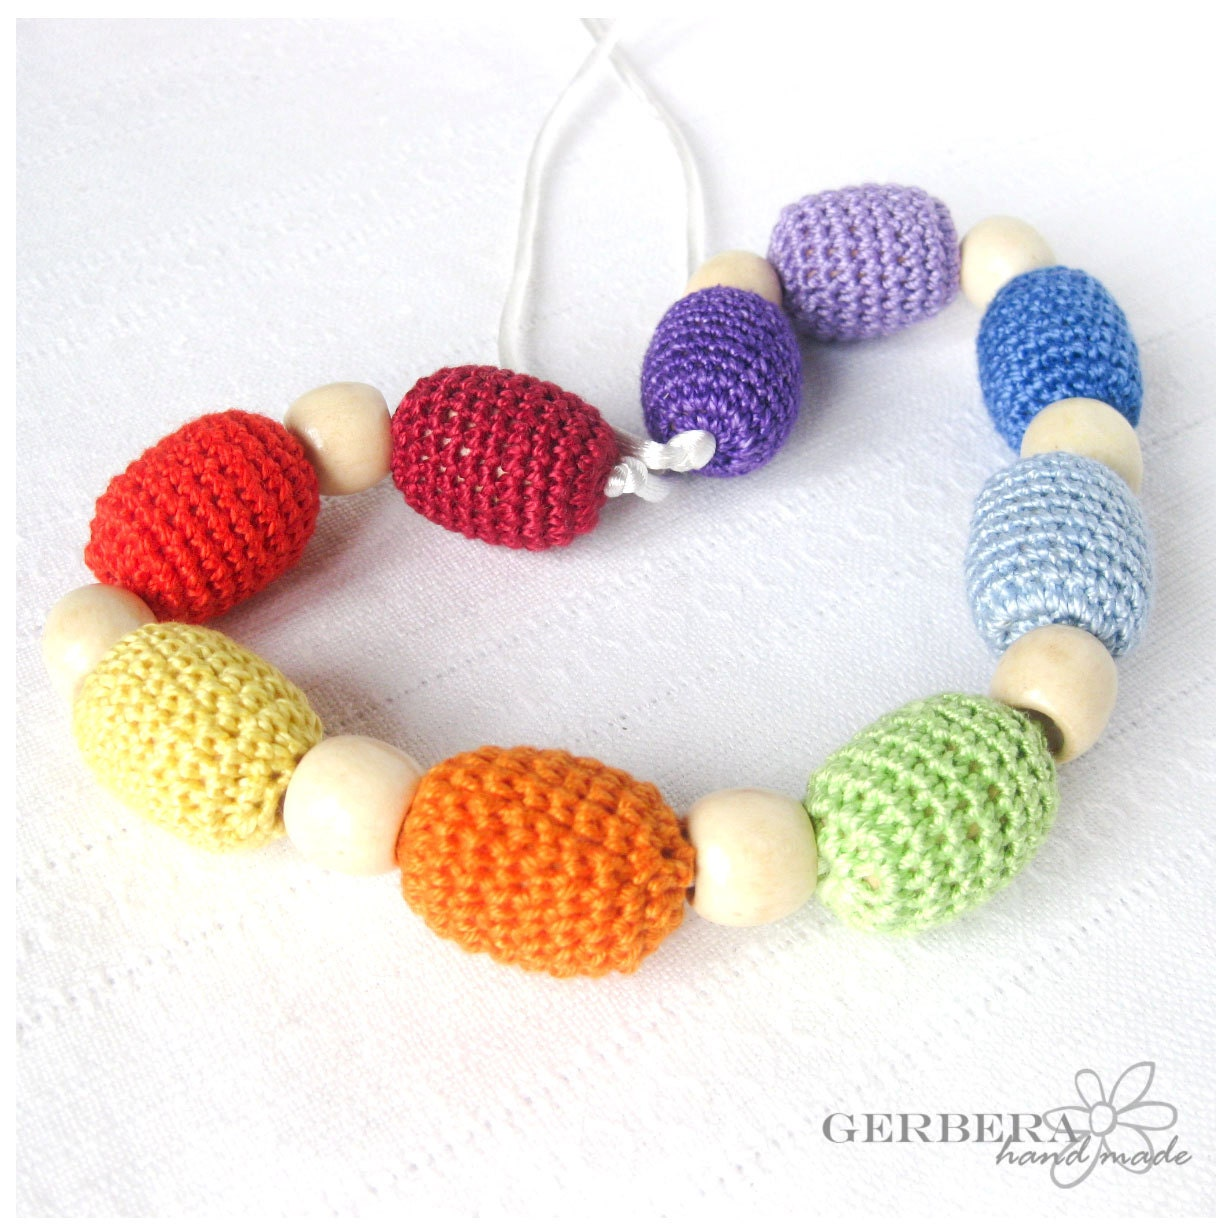 Nursing necklace/ Teething necklace for Mom to Wear and baby -rainbow colors 100% cotton wood beads